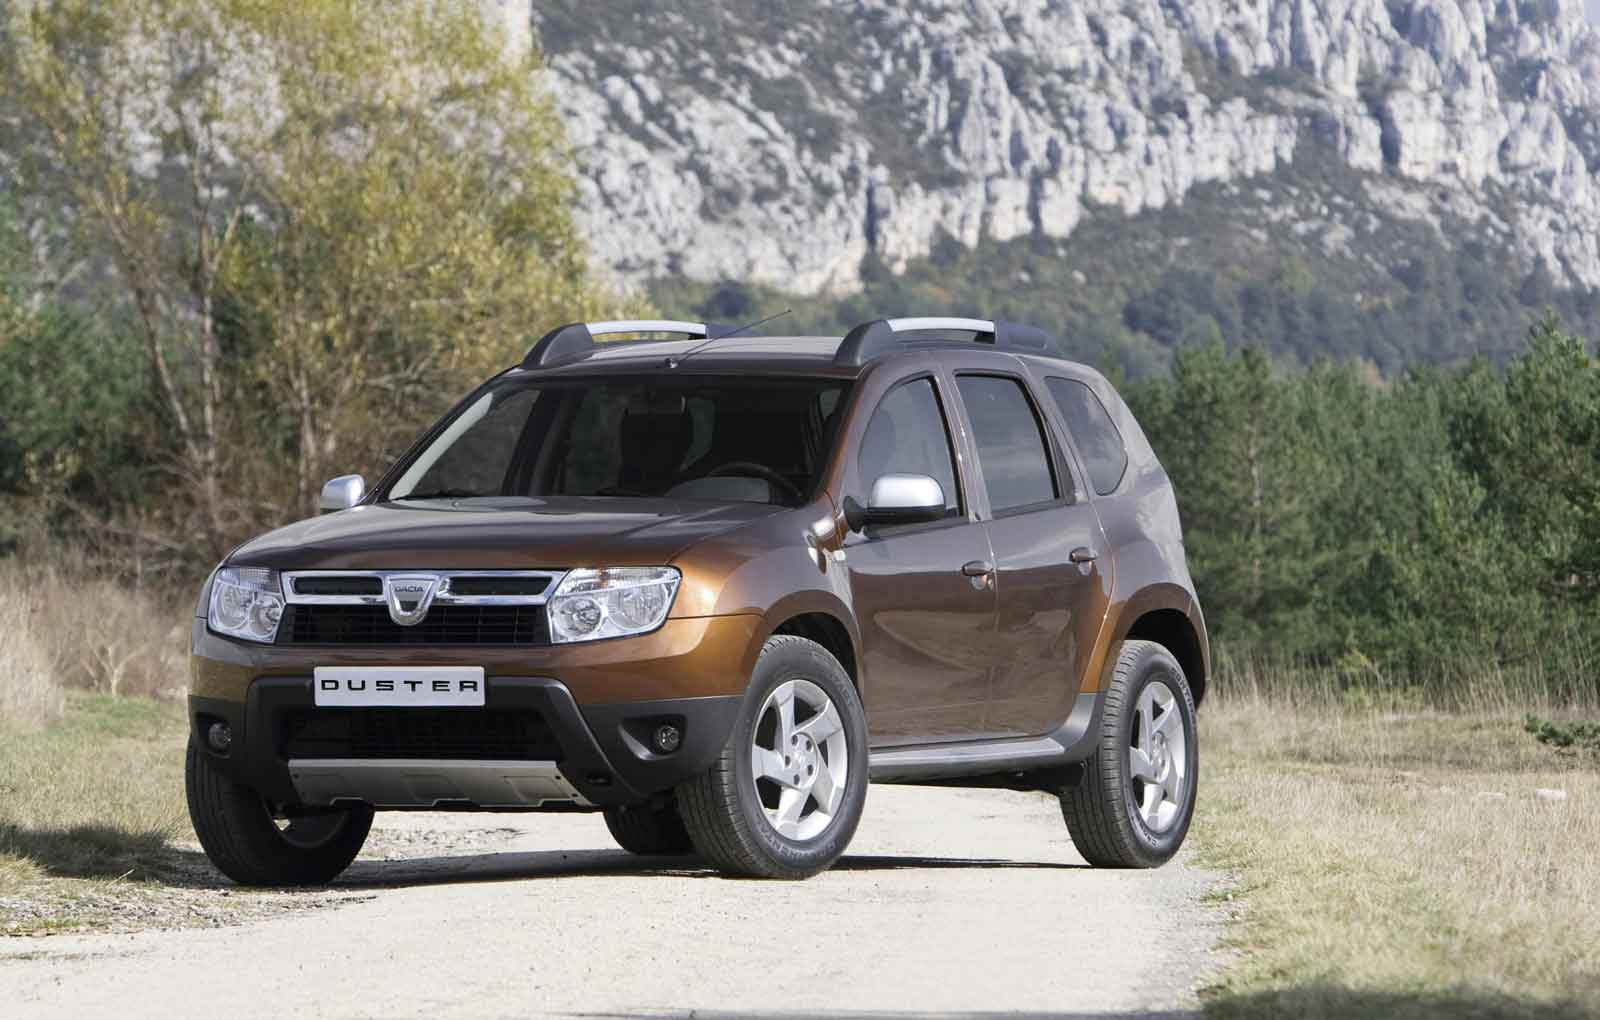 luxury cars price details for least expensive suv dacia duster. Black Bedroom Furniture Sets. Home Design Ideas